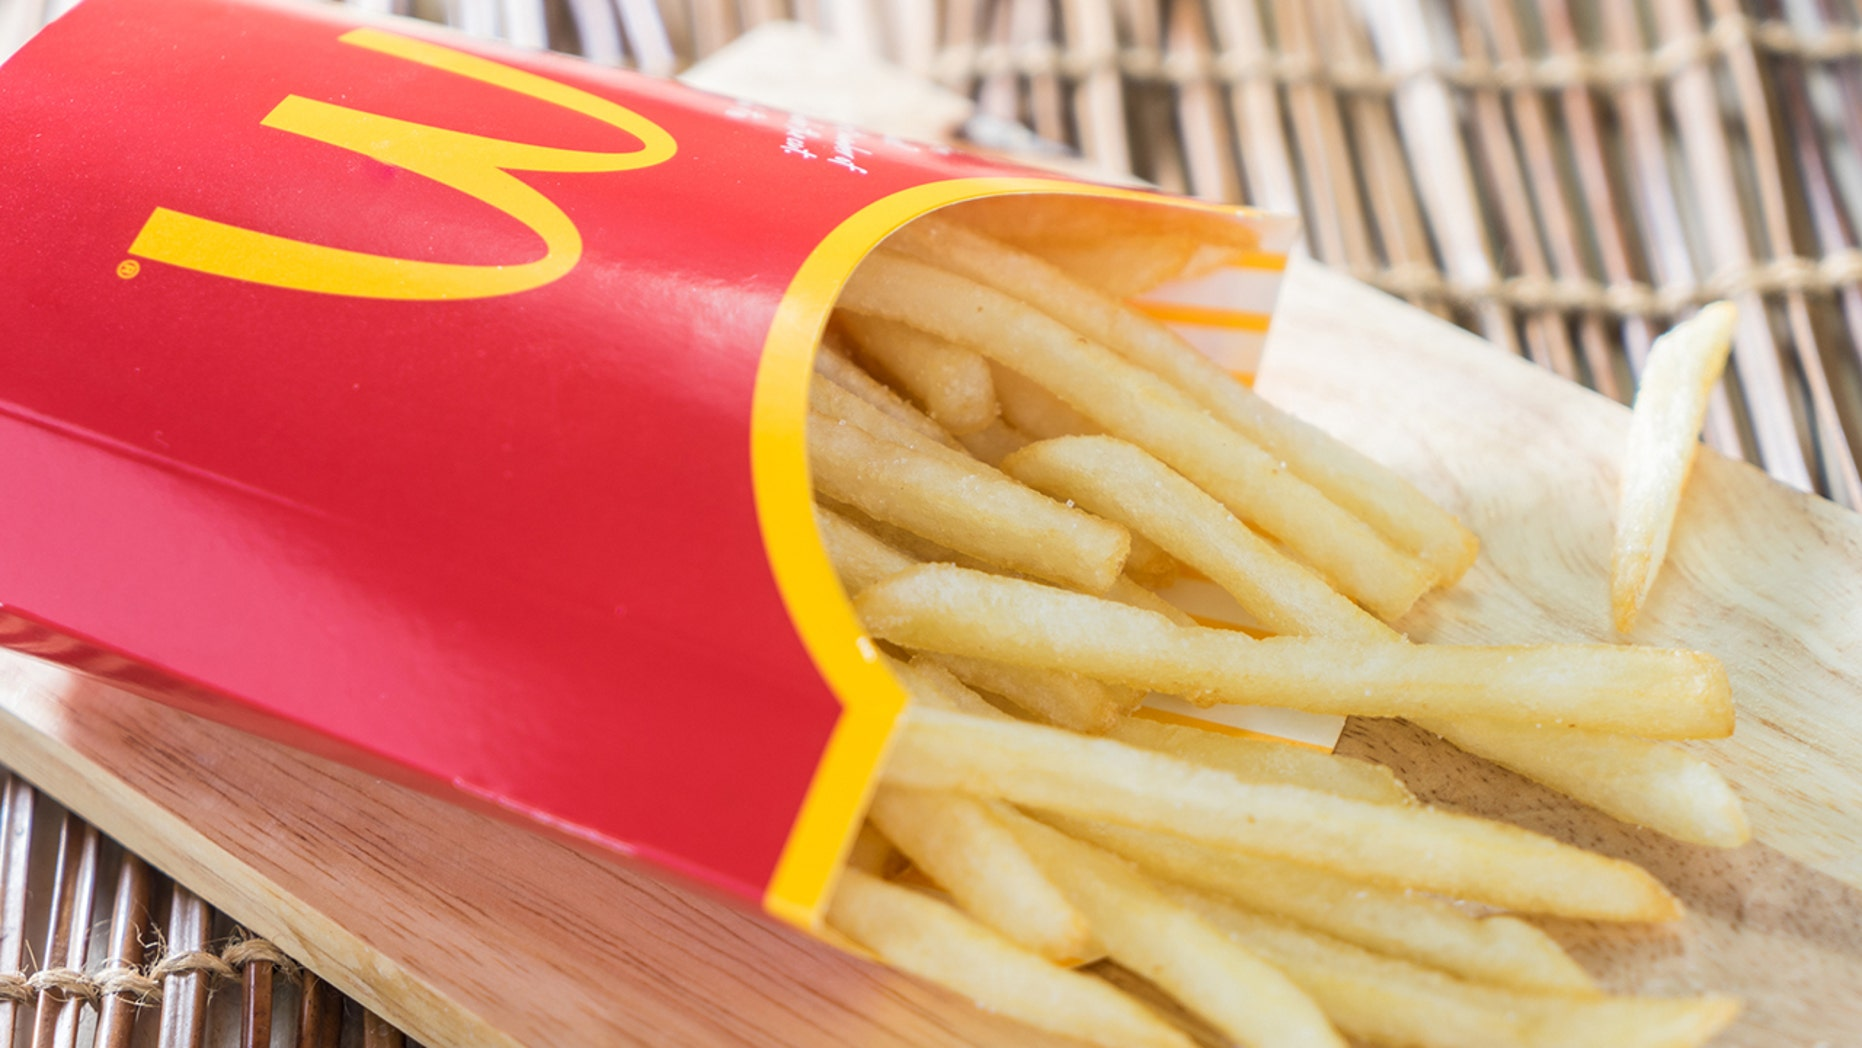 Man tries to win McDonald's Monopoly with 100 large fries | Fox News